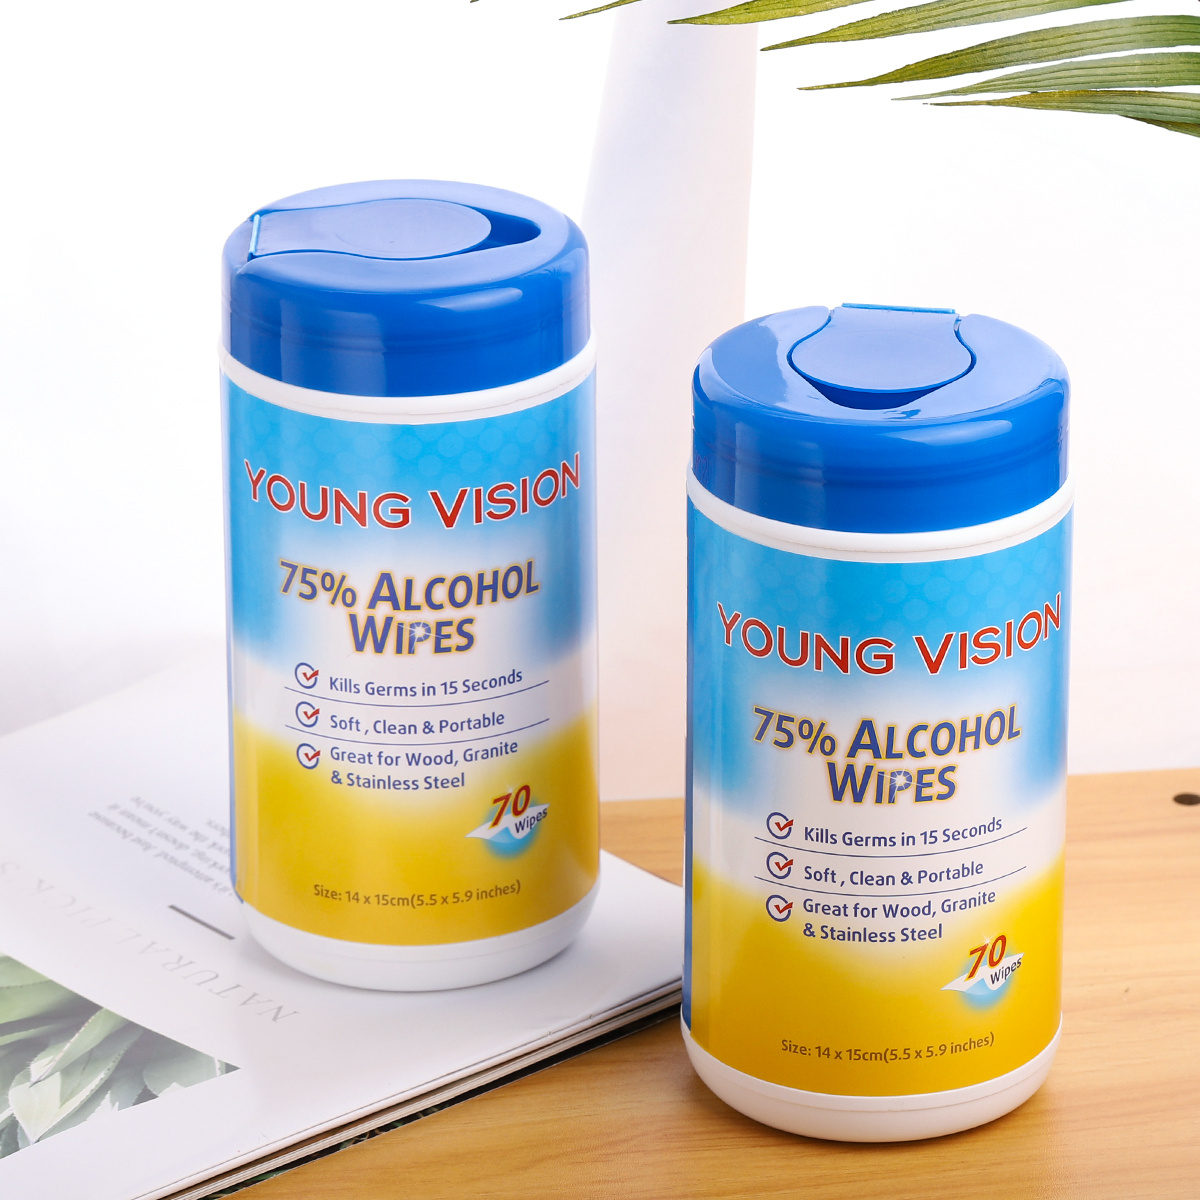 YOUNG VISION Hand Sanitizer & Alcohol Wipes (2 in 1 Pack)